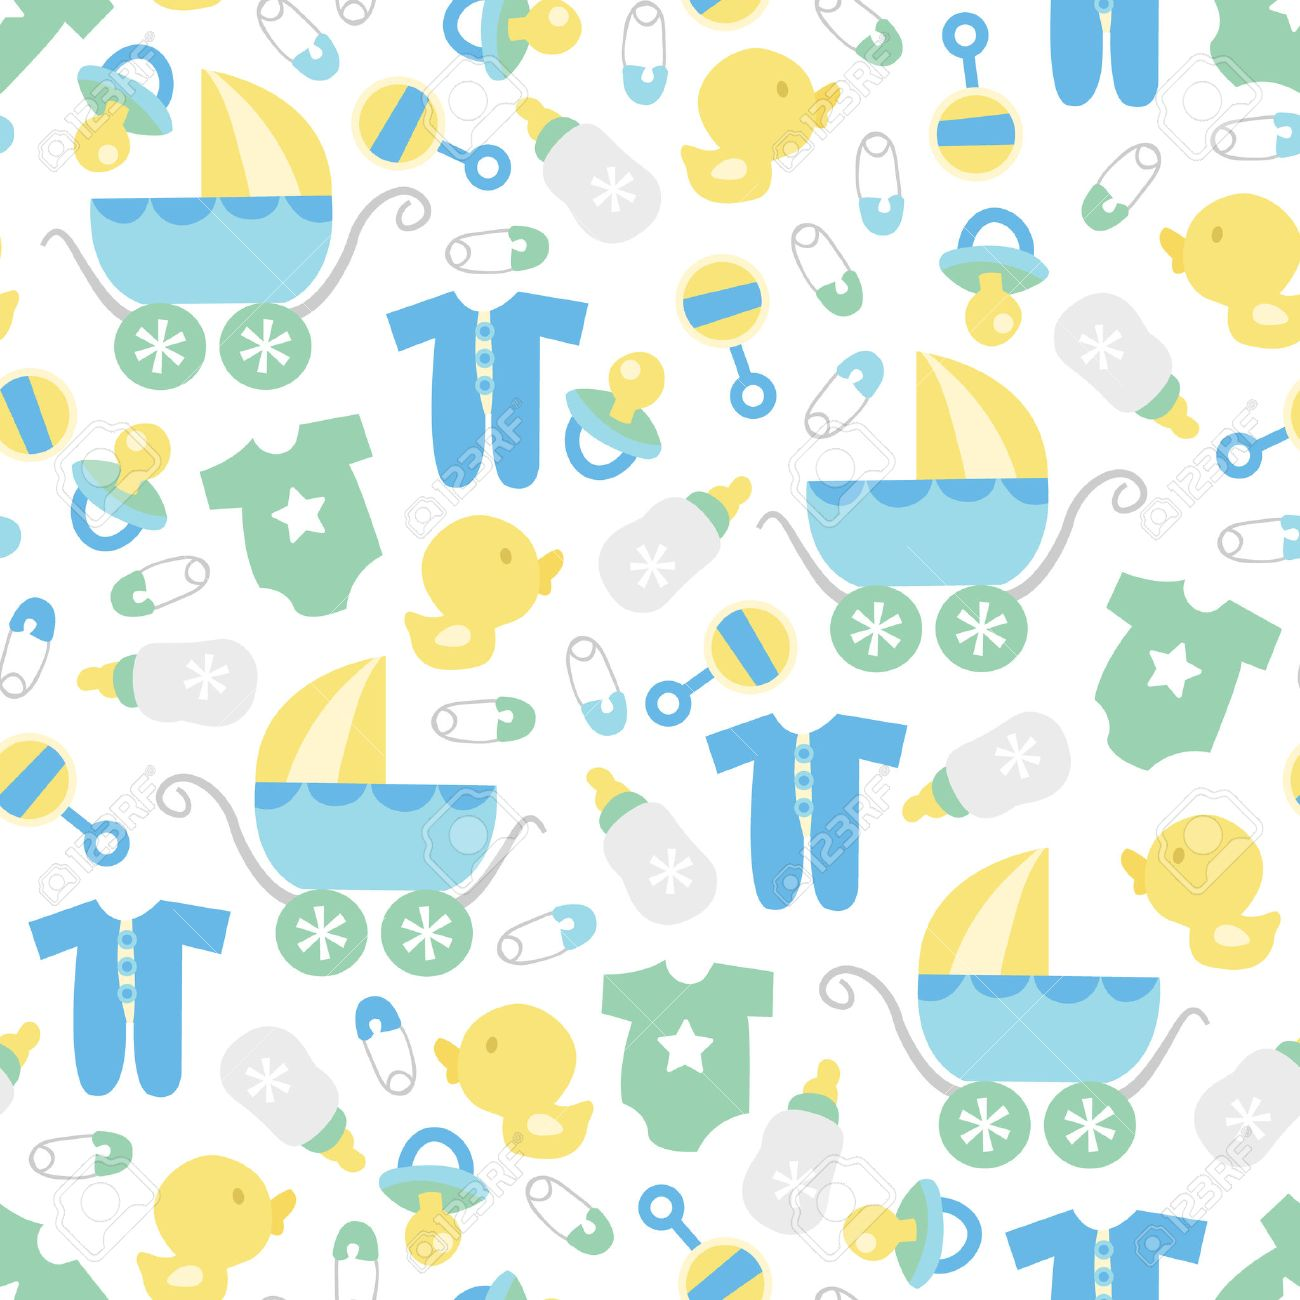 Baby boy background wallpaper baby boy background images baby boy - A Vector Illustration Of A Cute Retro Baby Boy Theme Seamless Pattern Background Stock Vector